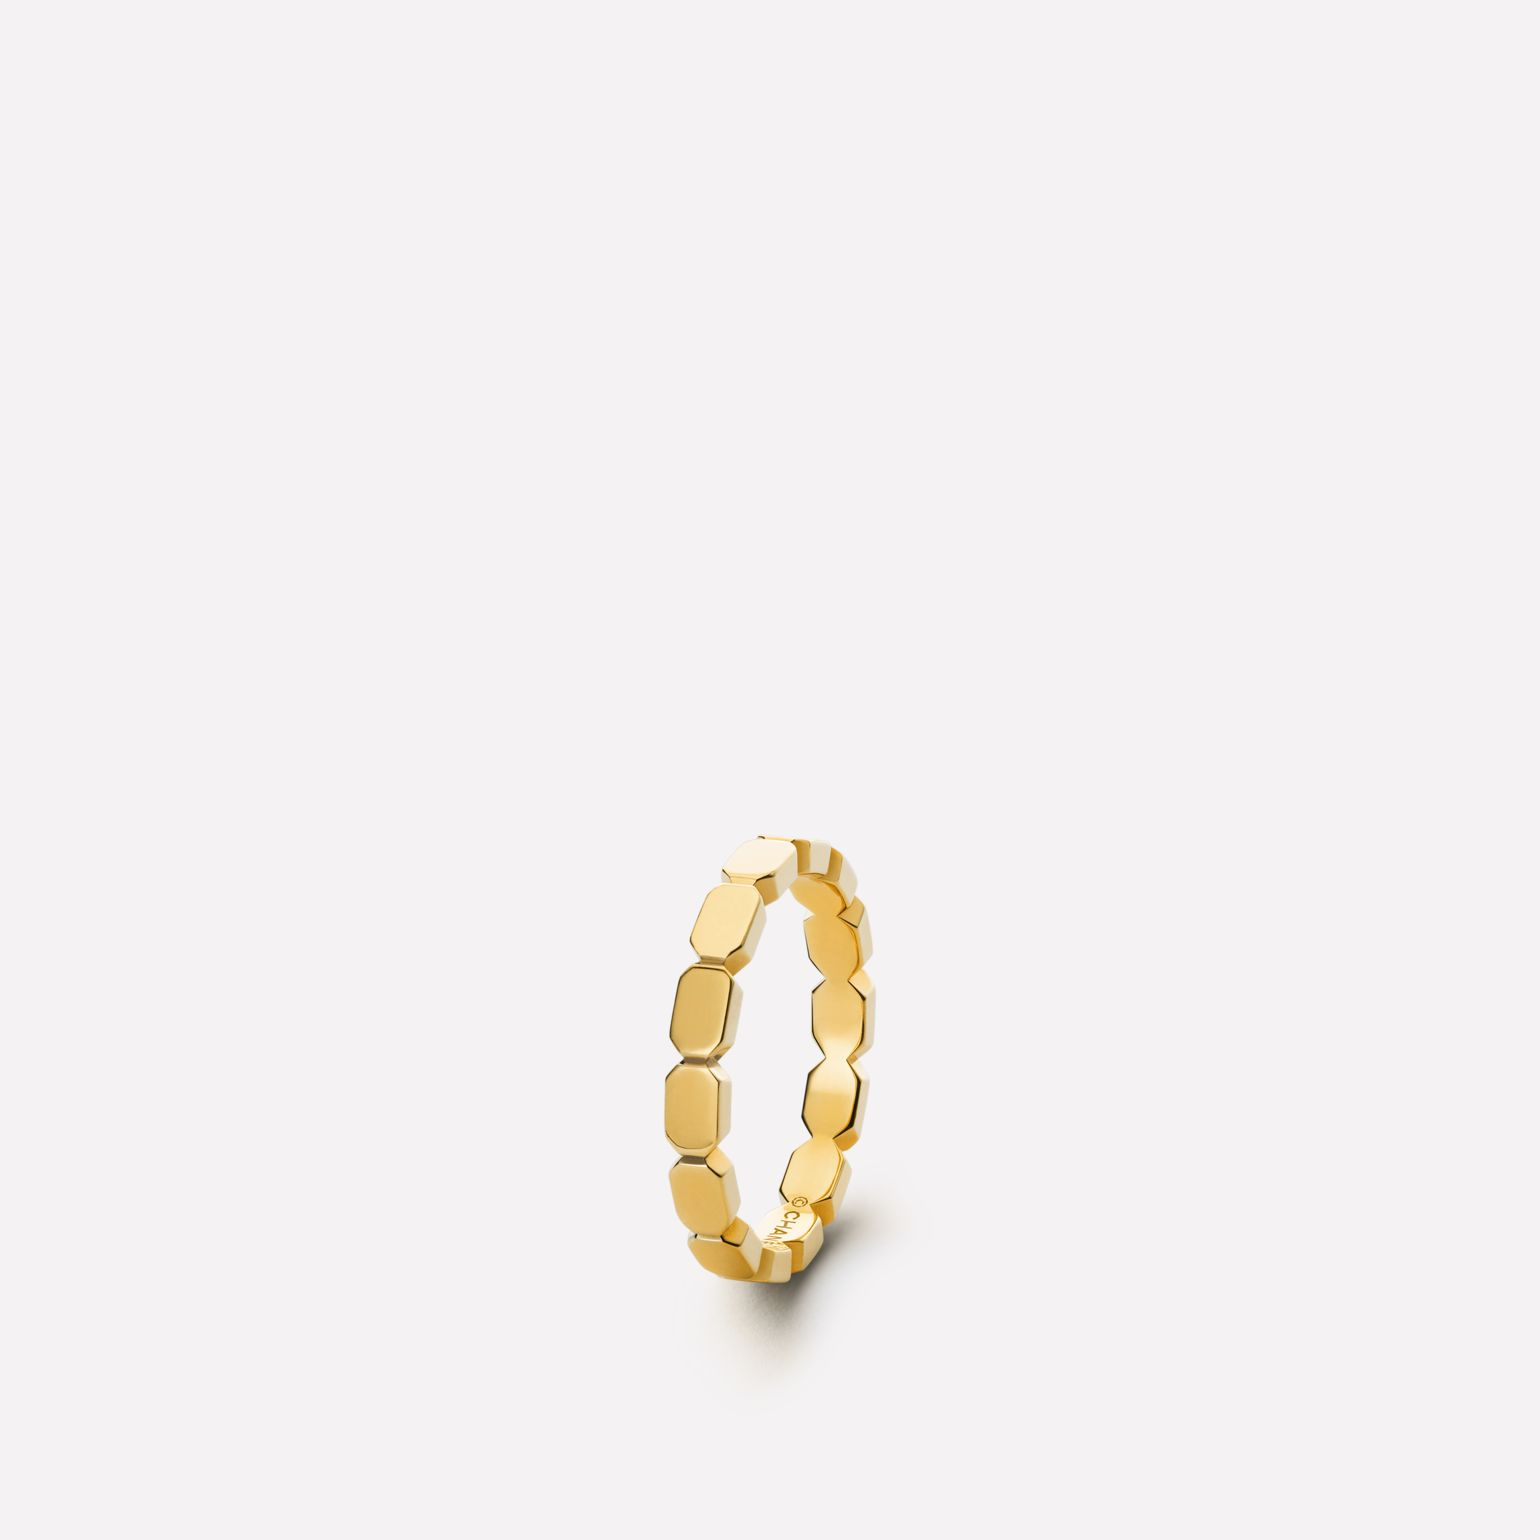 Baroque Ring Baroque chain in 18K yellow gold